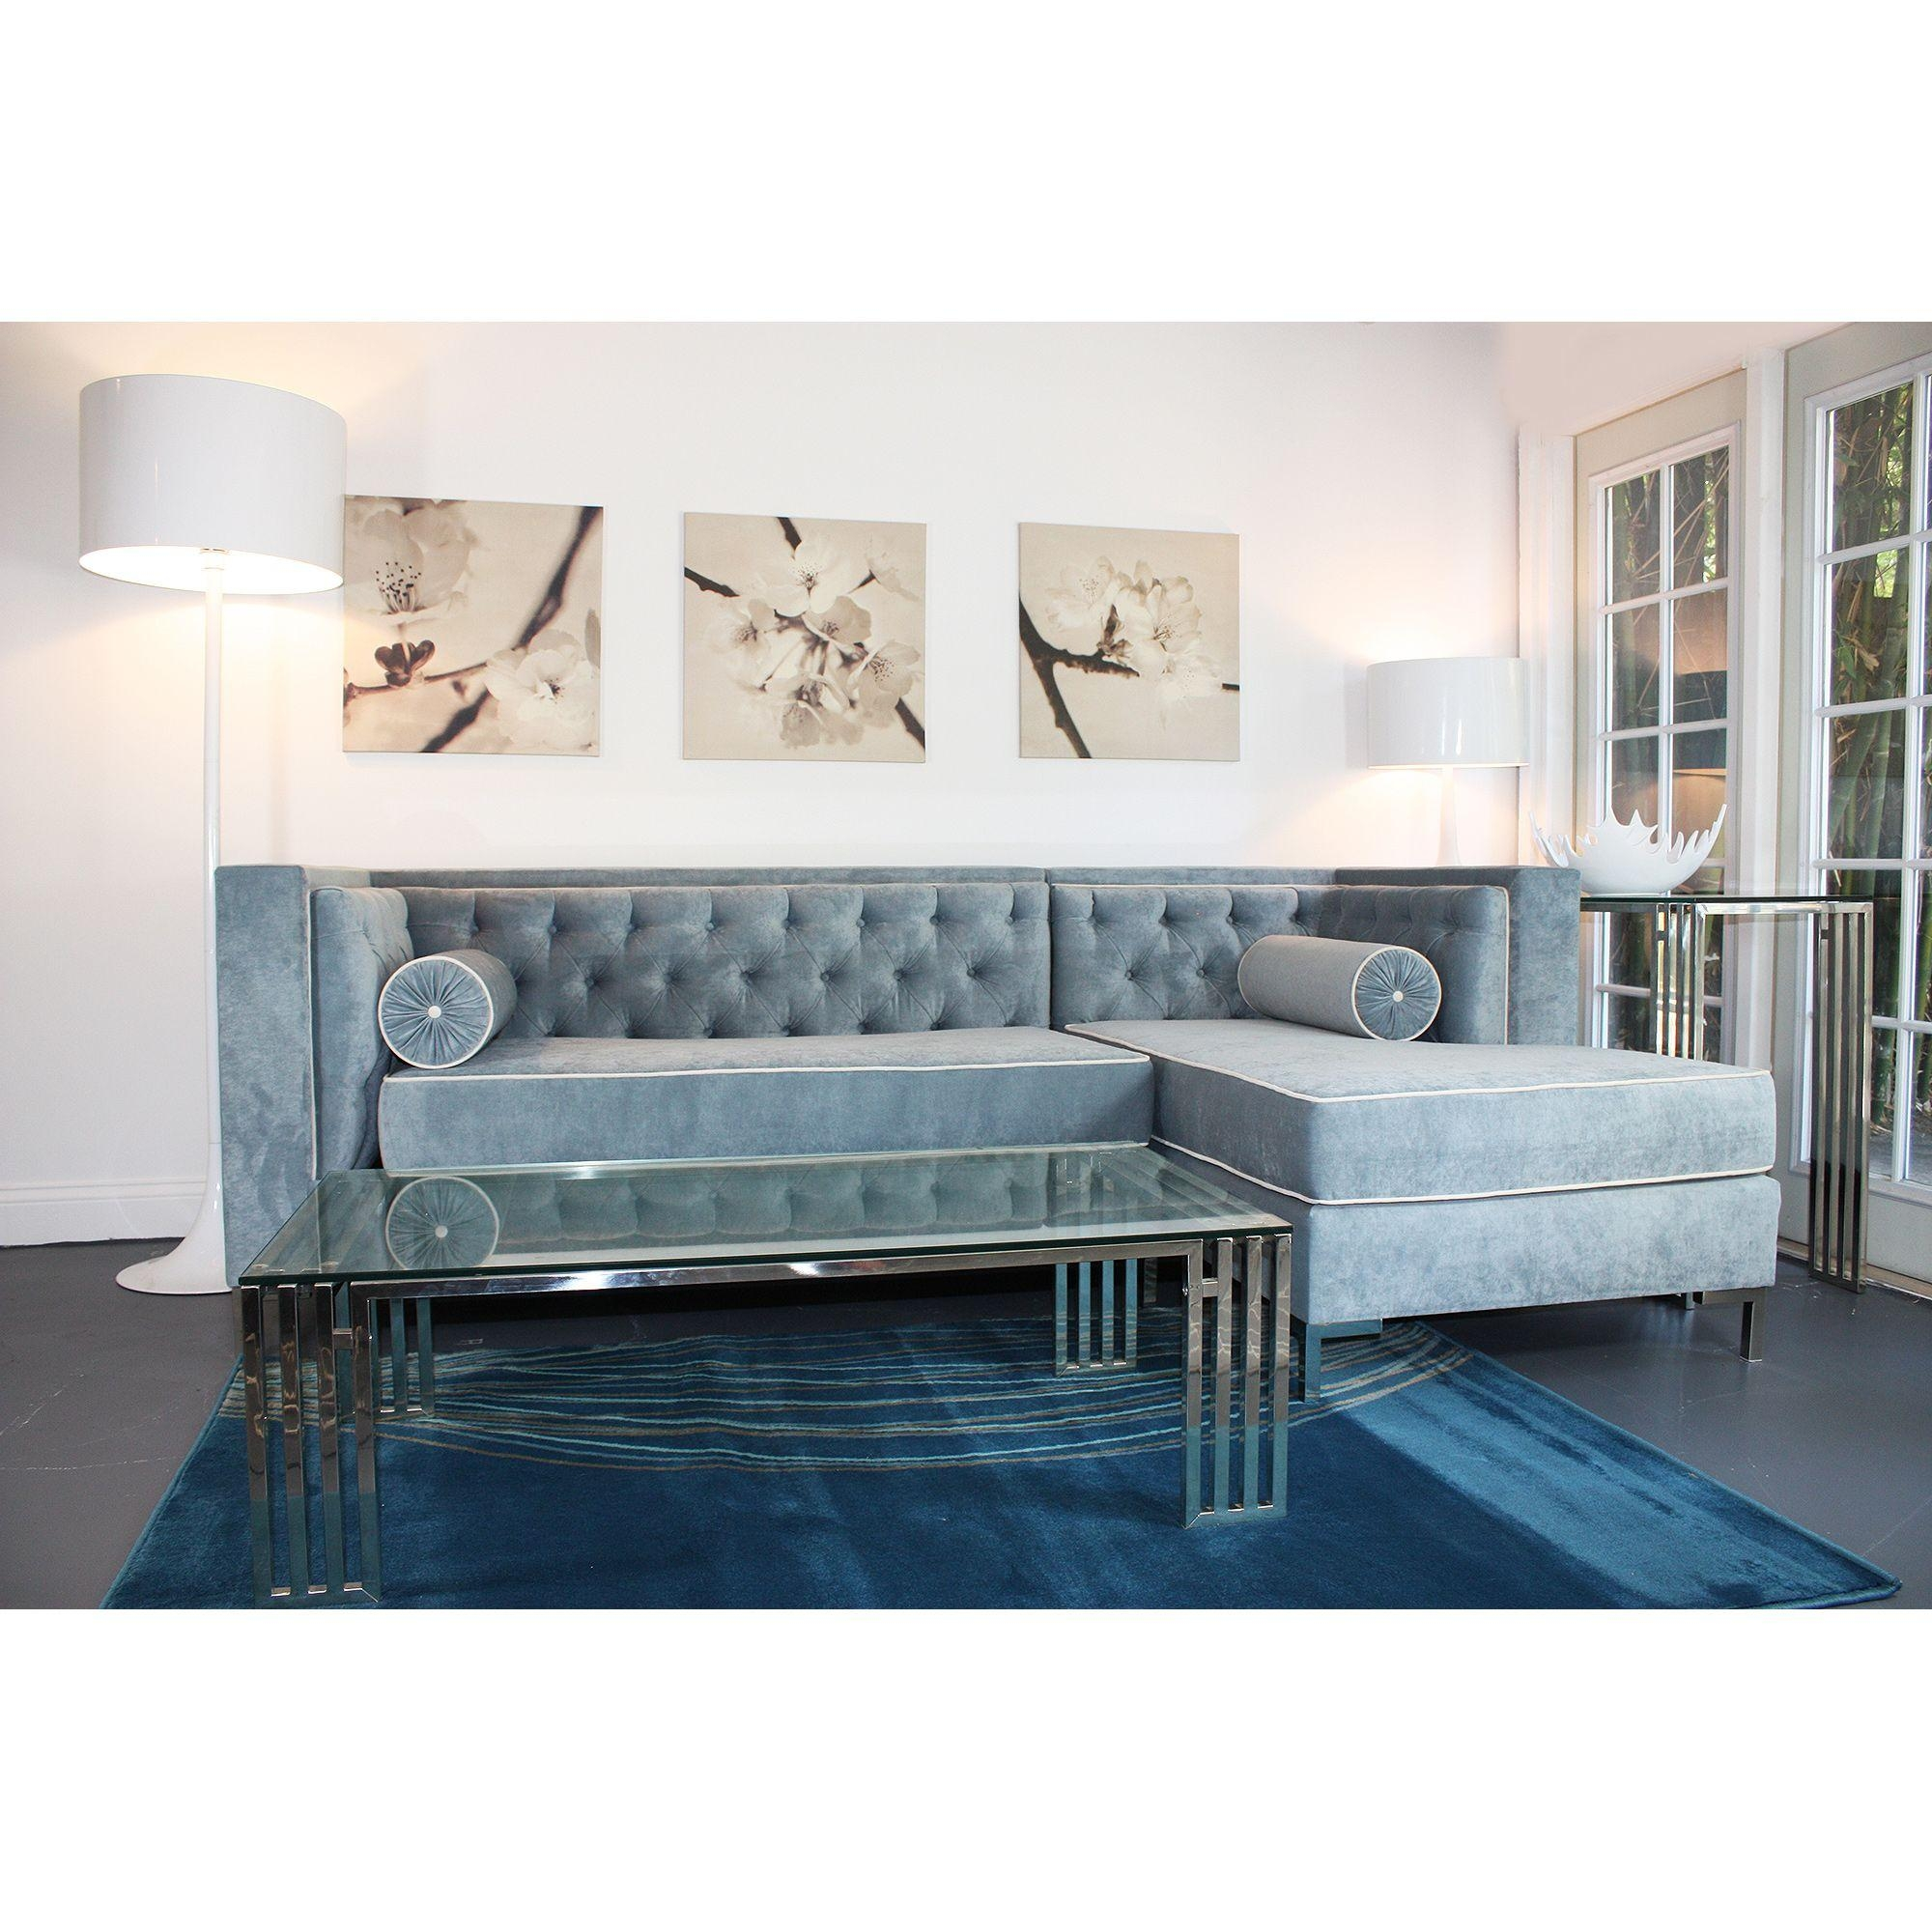 Velvet Tufted Sofa Sectional | Tehranmix Decoration With Tufted Sectional With Chaise (Image 20 of 20)